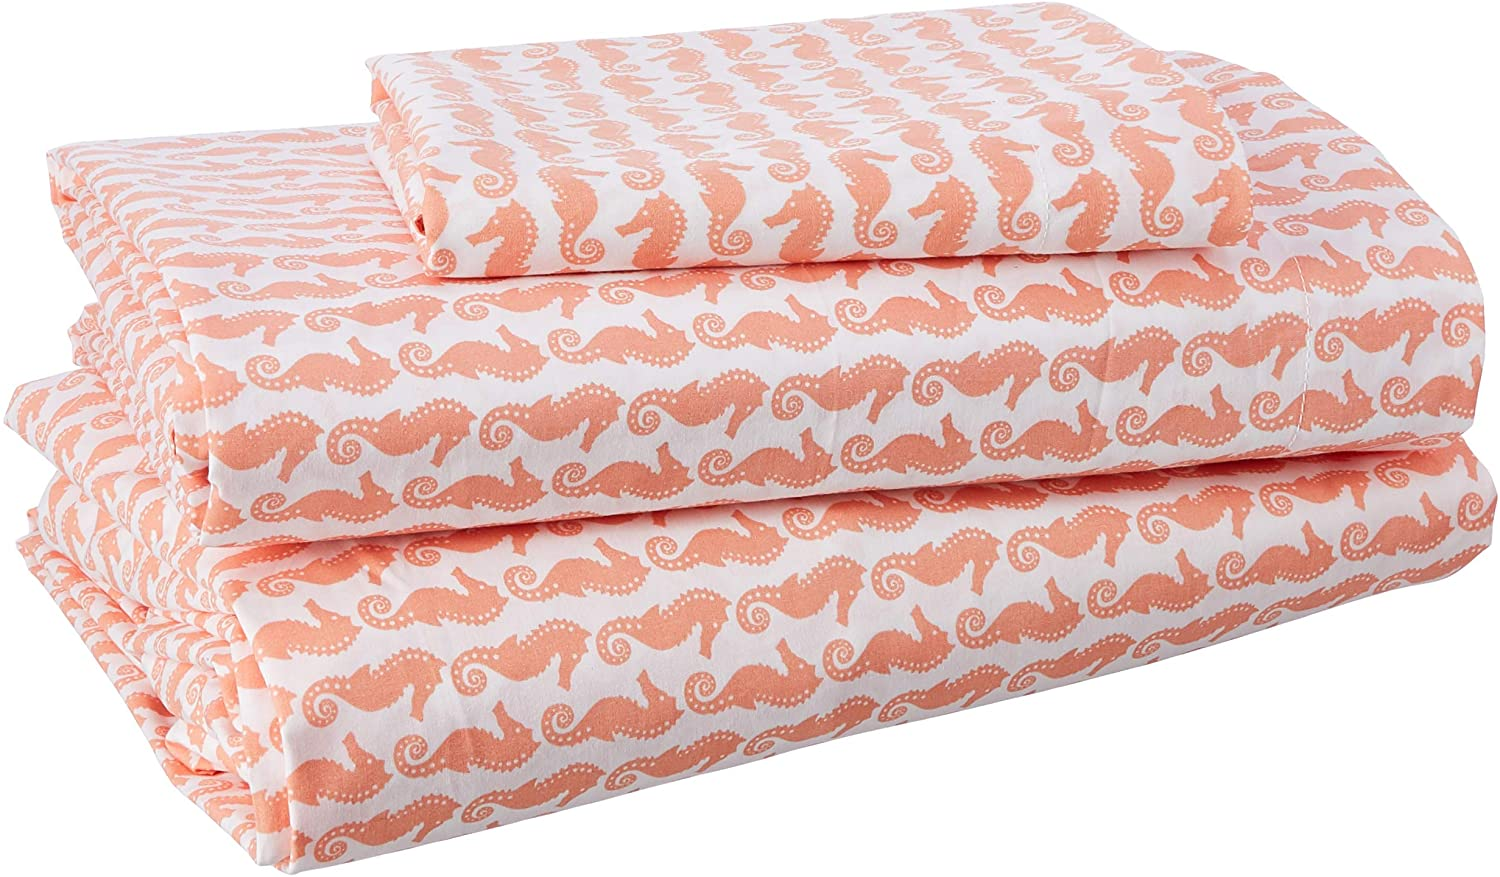 POPPY&FRITZ | PERCALE COLLECTION | BED SHEET SET-100%COTTON CRISP&COOL LIGHTWEIGHT&MOISTURE-WICKING BEDDING TWIN XL SEAHORSES